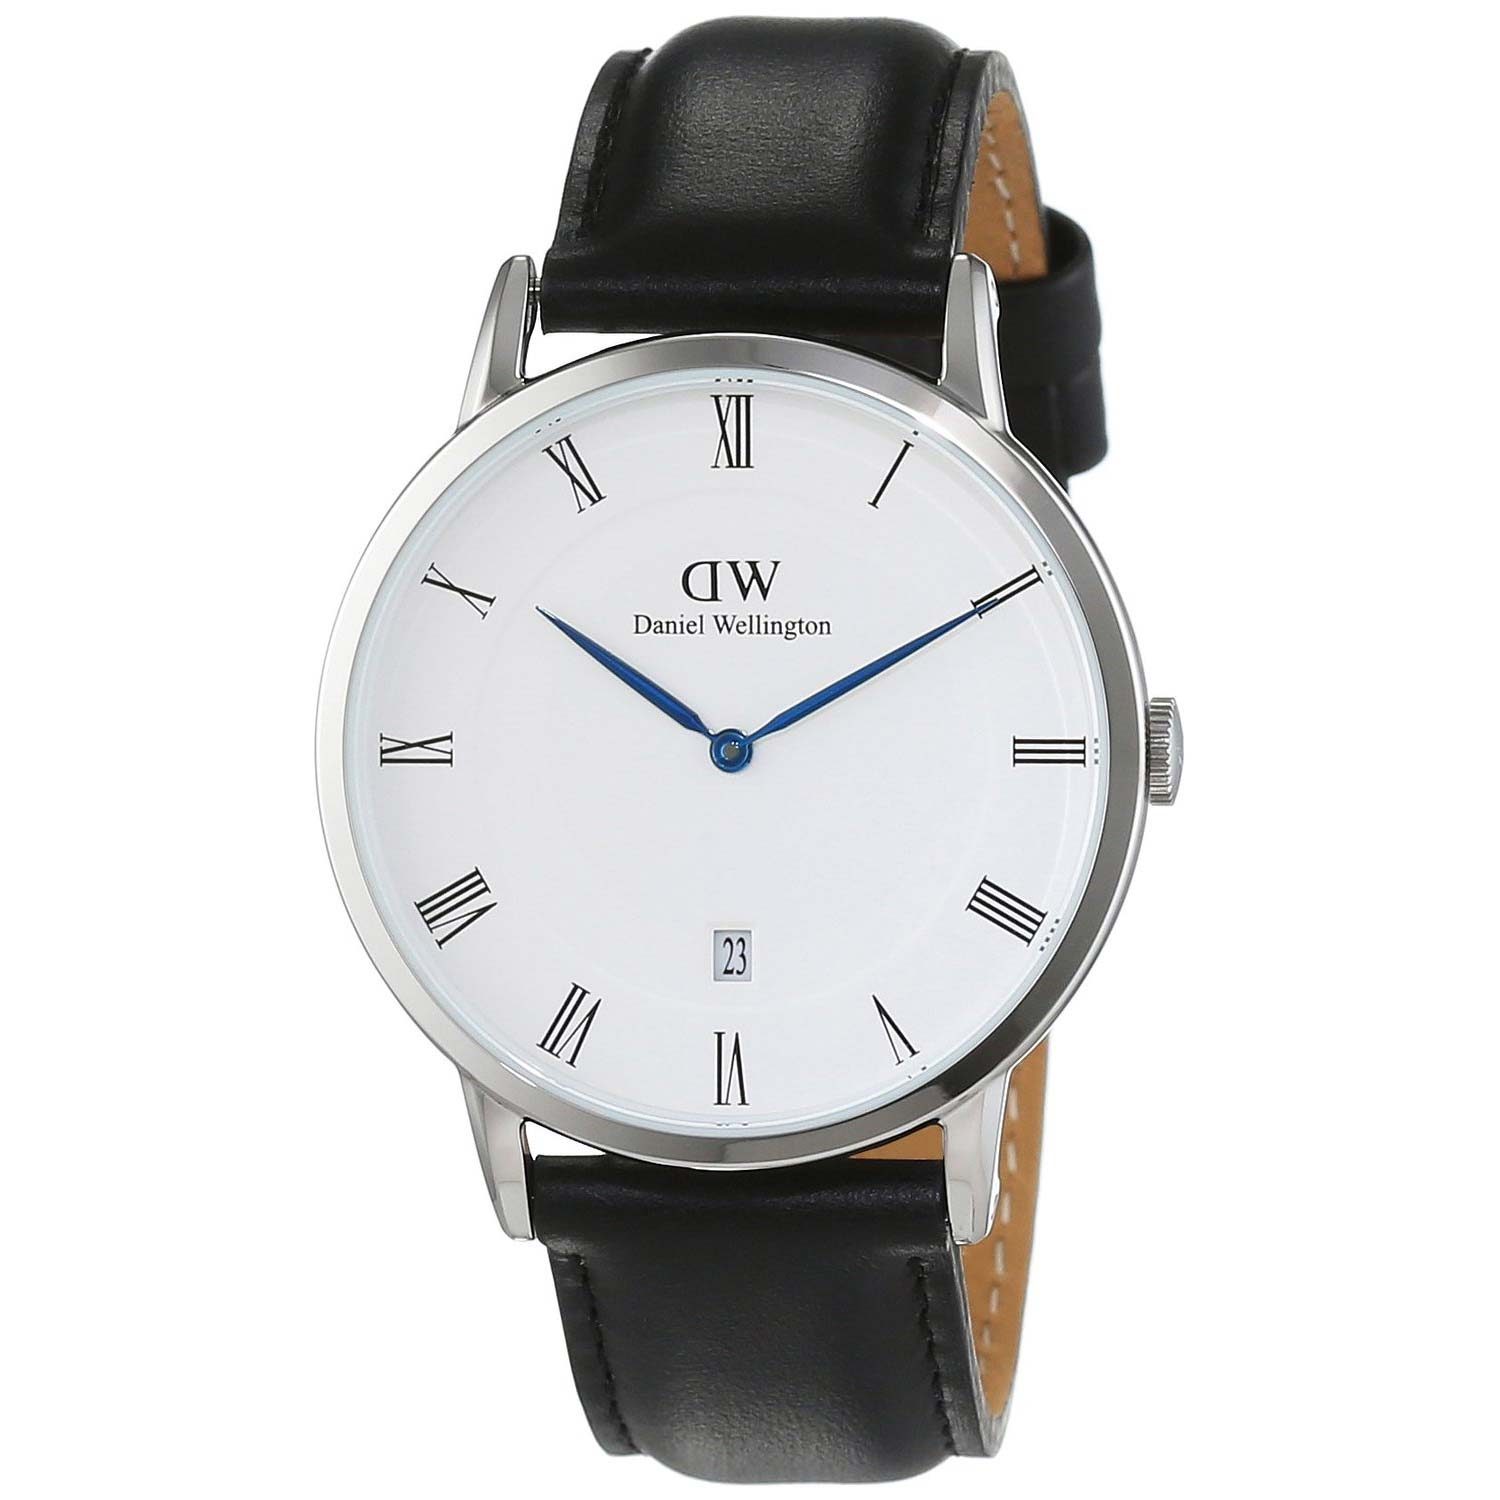 daniel wellington dapper sheffield dw00100088 business uhr f r herren herrenuhren. Black Bedroom Furniture Sets. Home Design Ideas